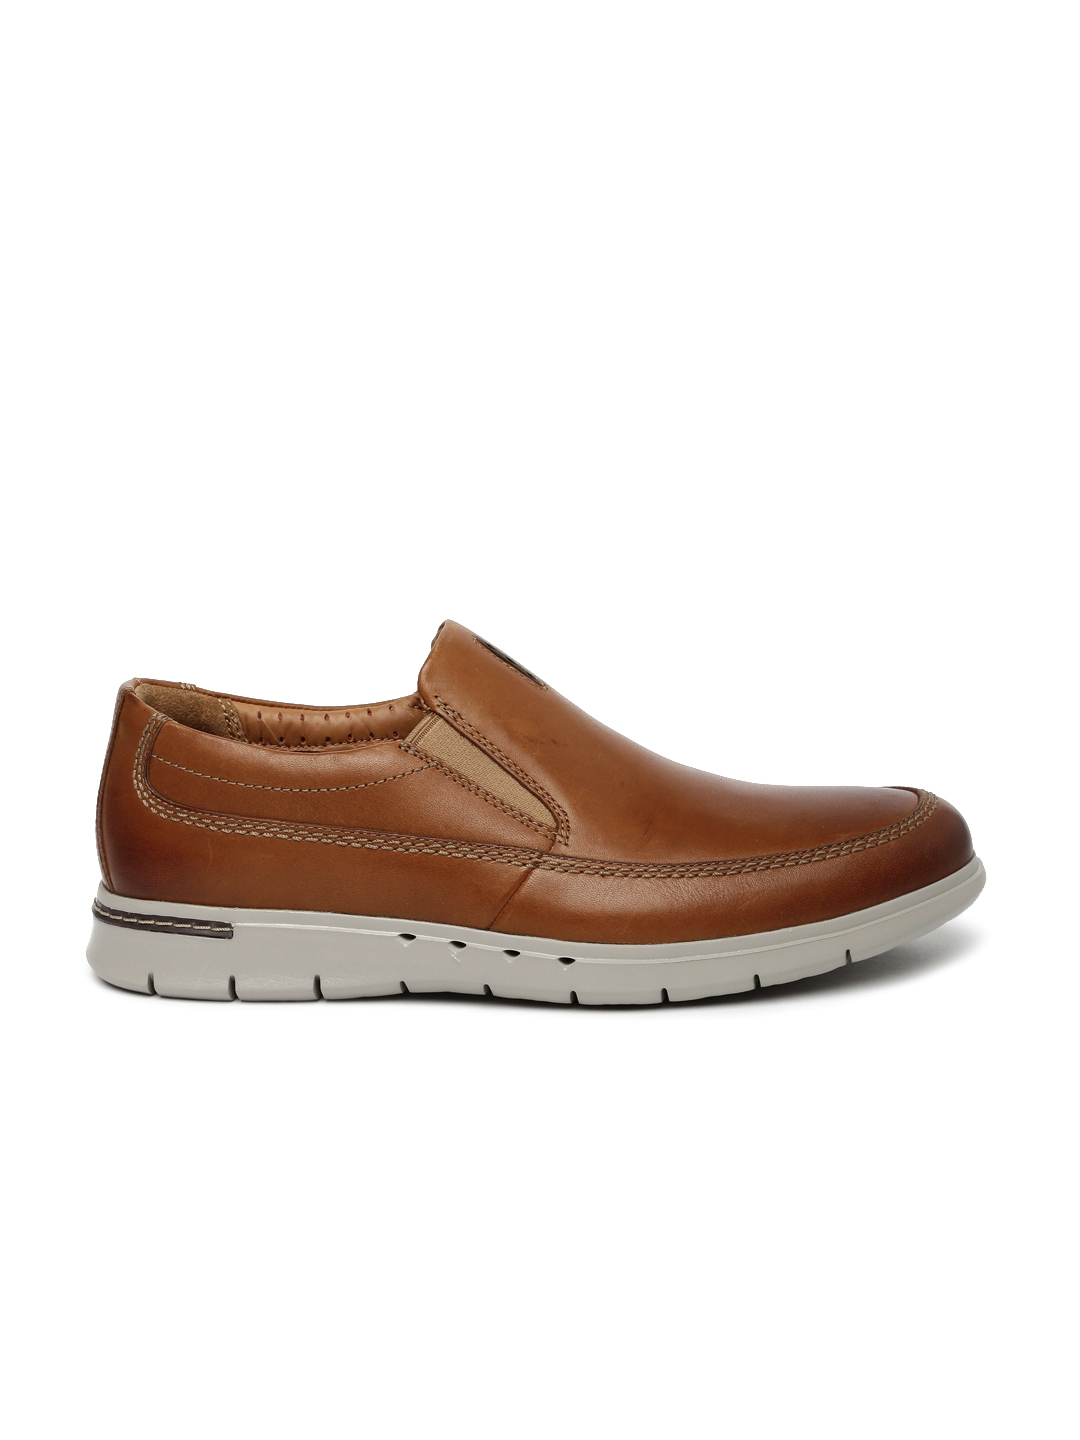 73802c58 Clarks Unstructured Men Tan Brown Easy Leather Unbyner Slip-On Sneakers